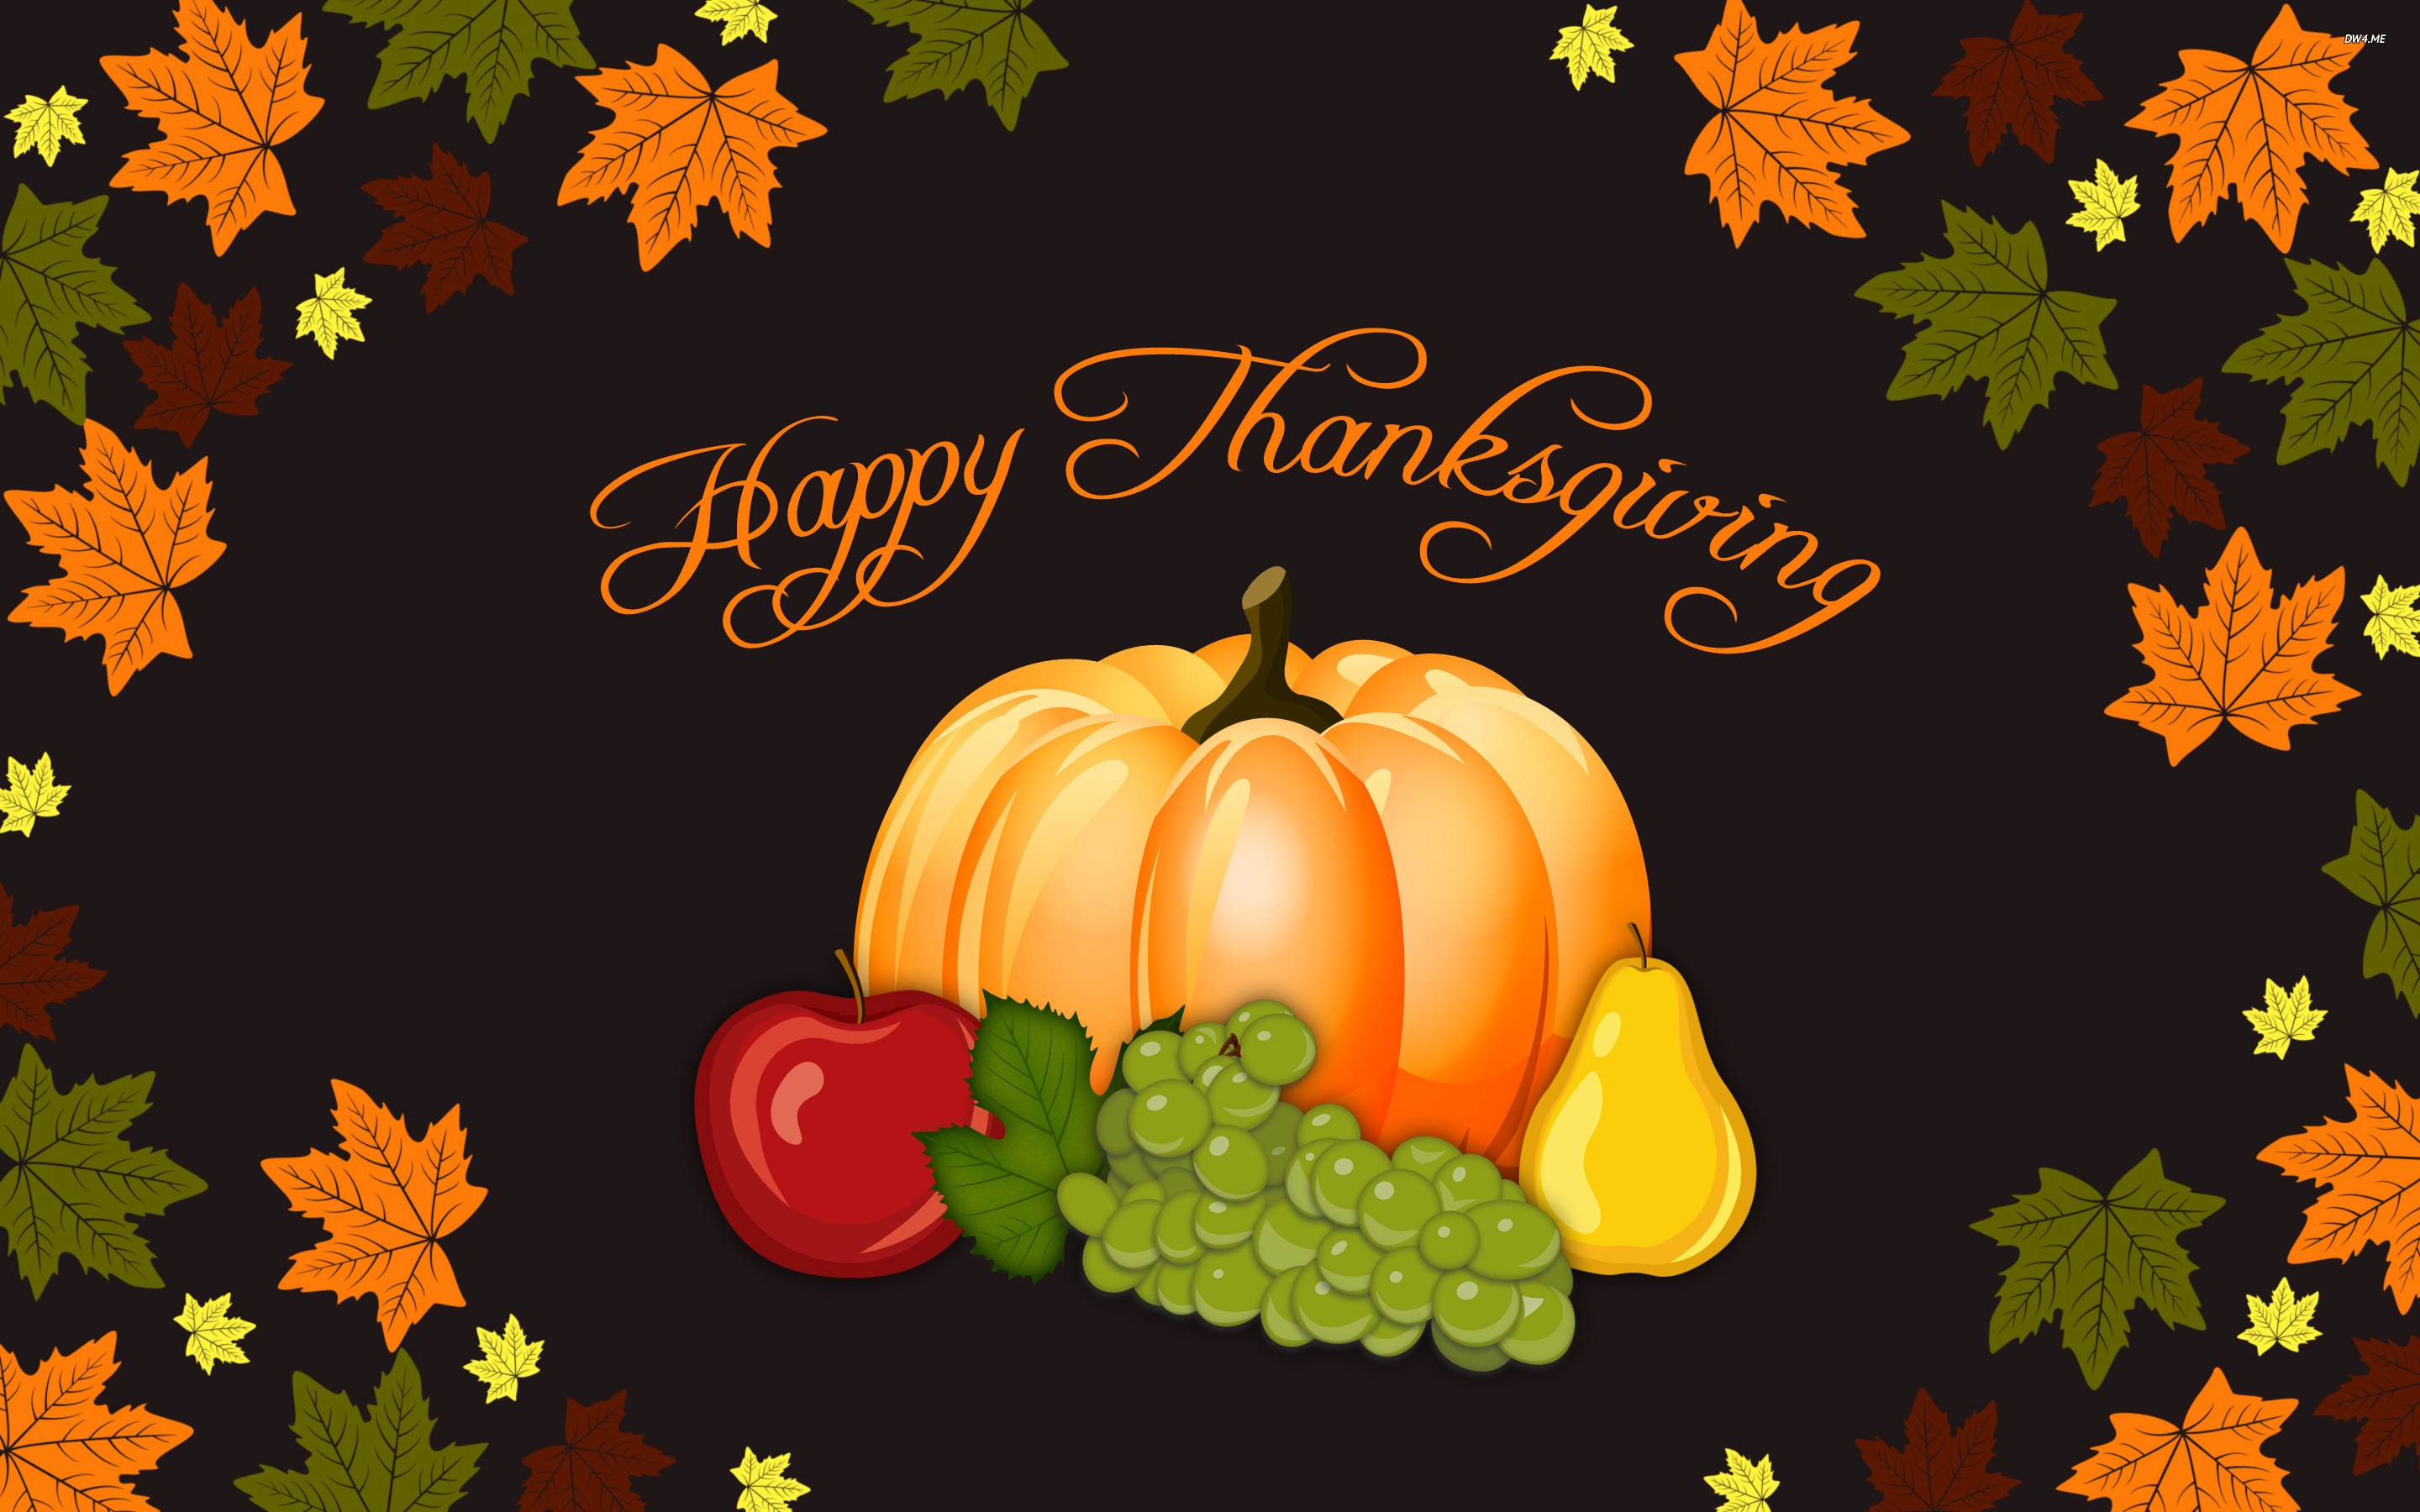 Thanksgiving-Wallpaper-12.jpg